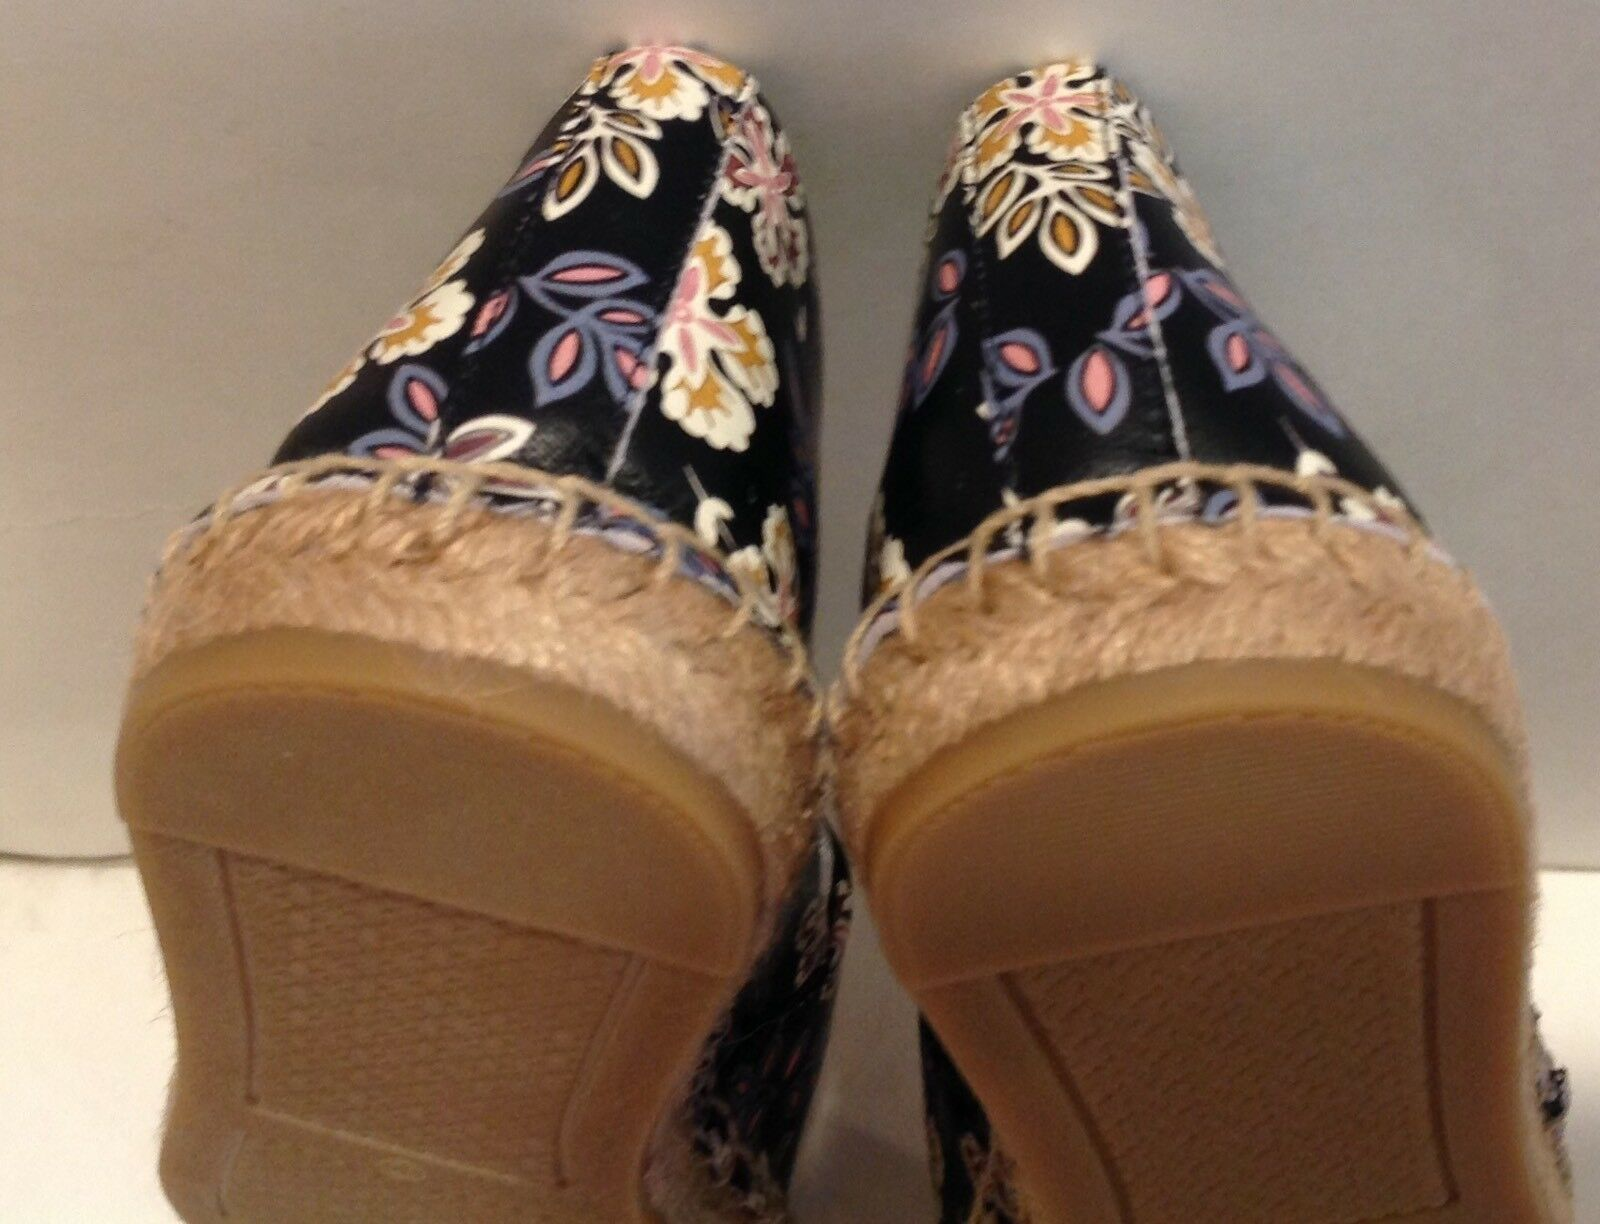 Tory Burch Hopewell Black P. Nappa Leather colorBlock Espadrille shoes shoes shoes Flat S.9 3bdaca